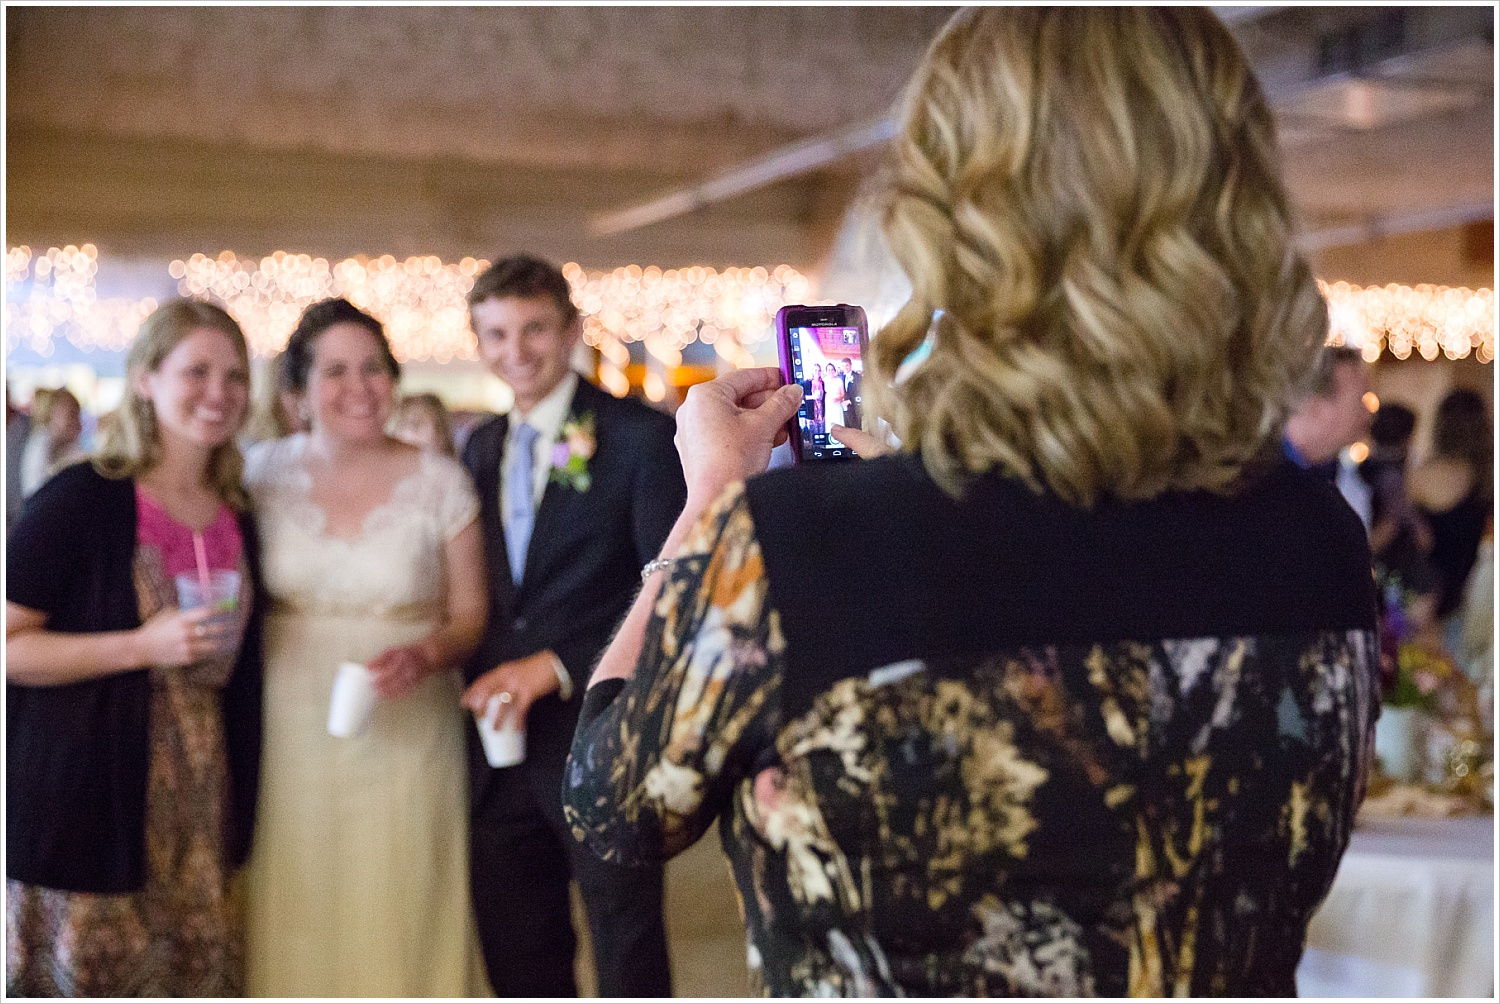 A wedding guest takes a picture of a bride and groom with her cell phone during a wedding reception-Should you have an unplugged wedding?, written by Texas Wedding Photographers, Jason & Melaina Photography-www.jasonandmelaina.com